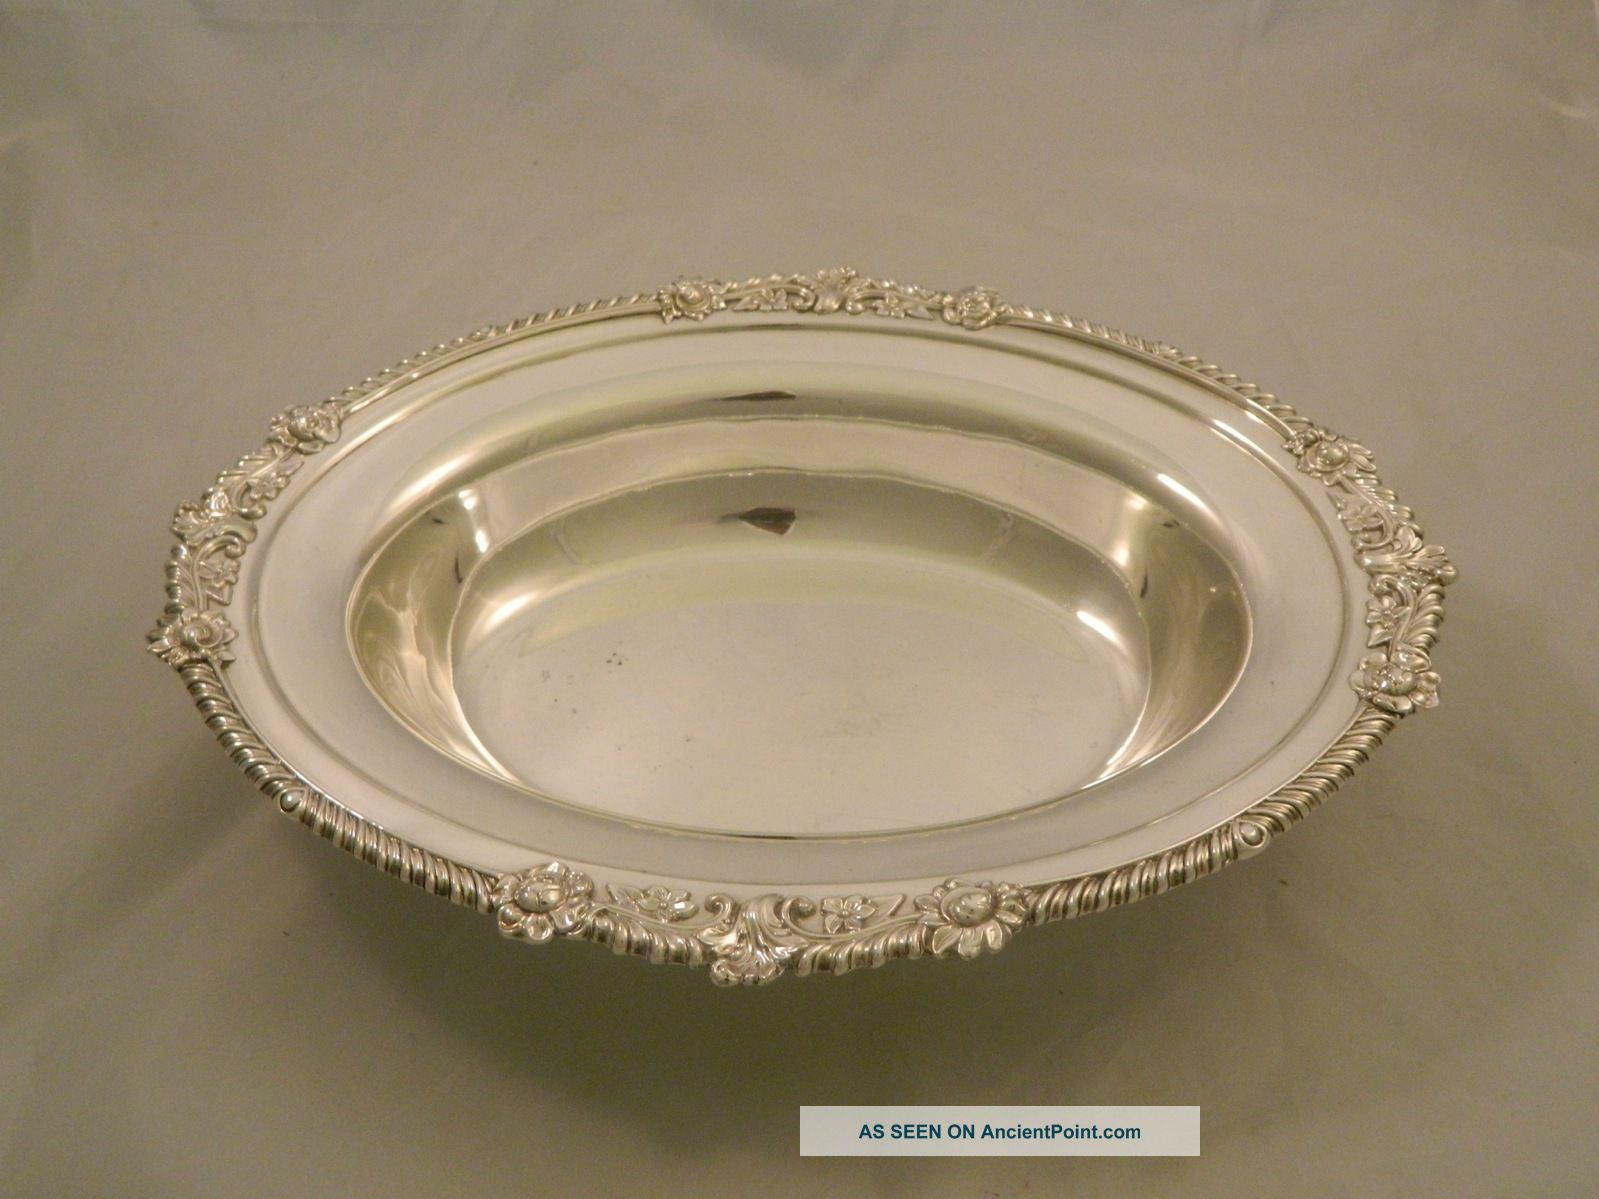 Vintage Oval Serving Fruit Salad Dish Ornate Border Decoration Size 14 X 10.  5